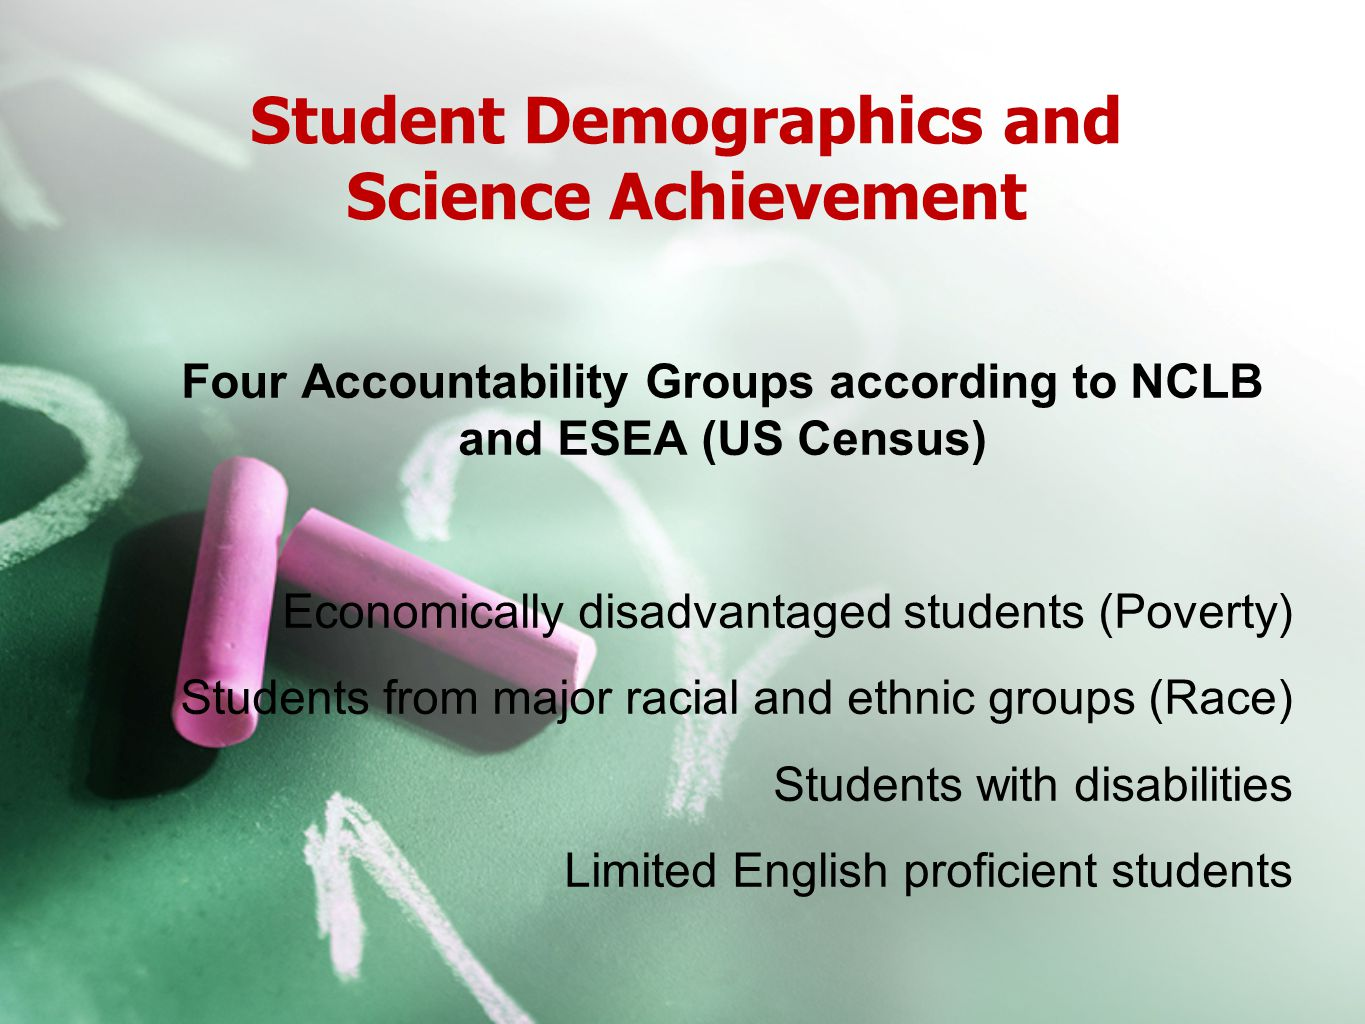 Student Demographics and Science Achievement Four Accountability Groups according to NCLB and ESEA (US Census) Economically disadvantaged students (Poverty) Students from major racial and ethnic groups (Race) Students with disabilities Limited English proficient students